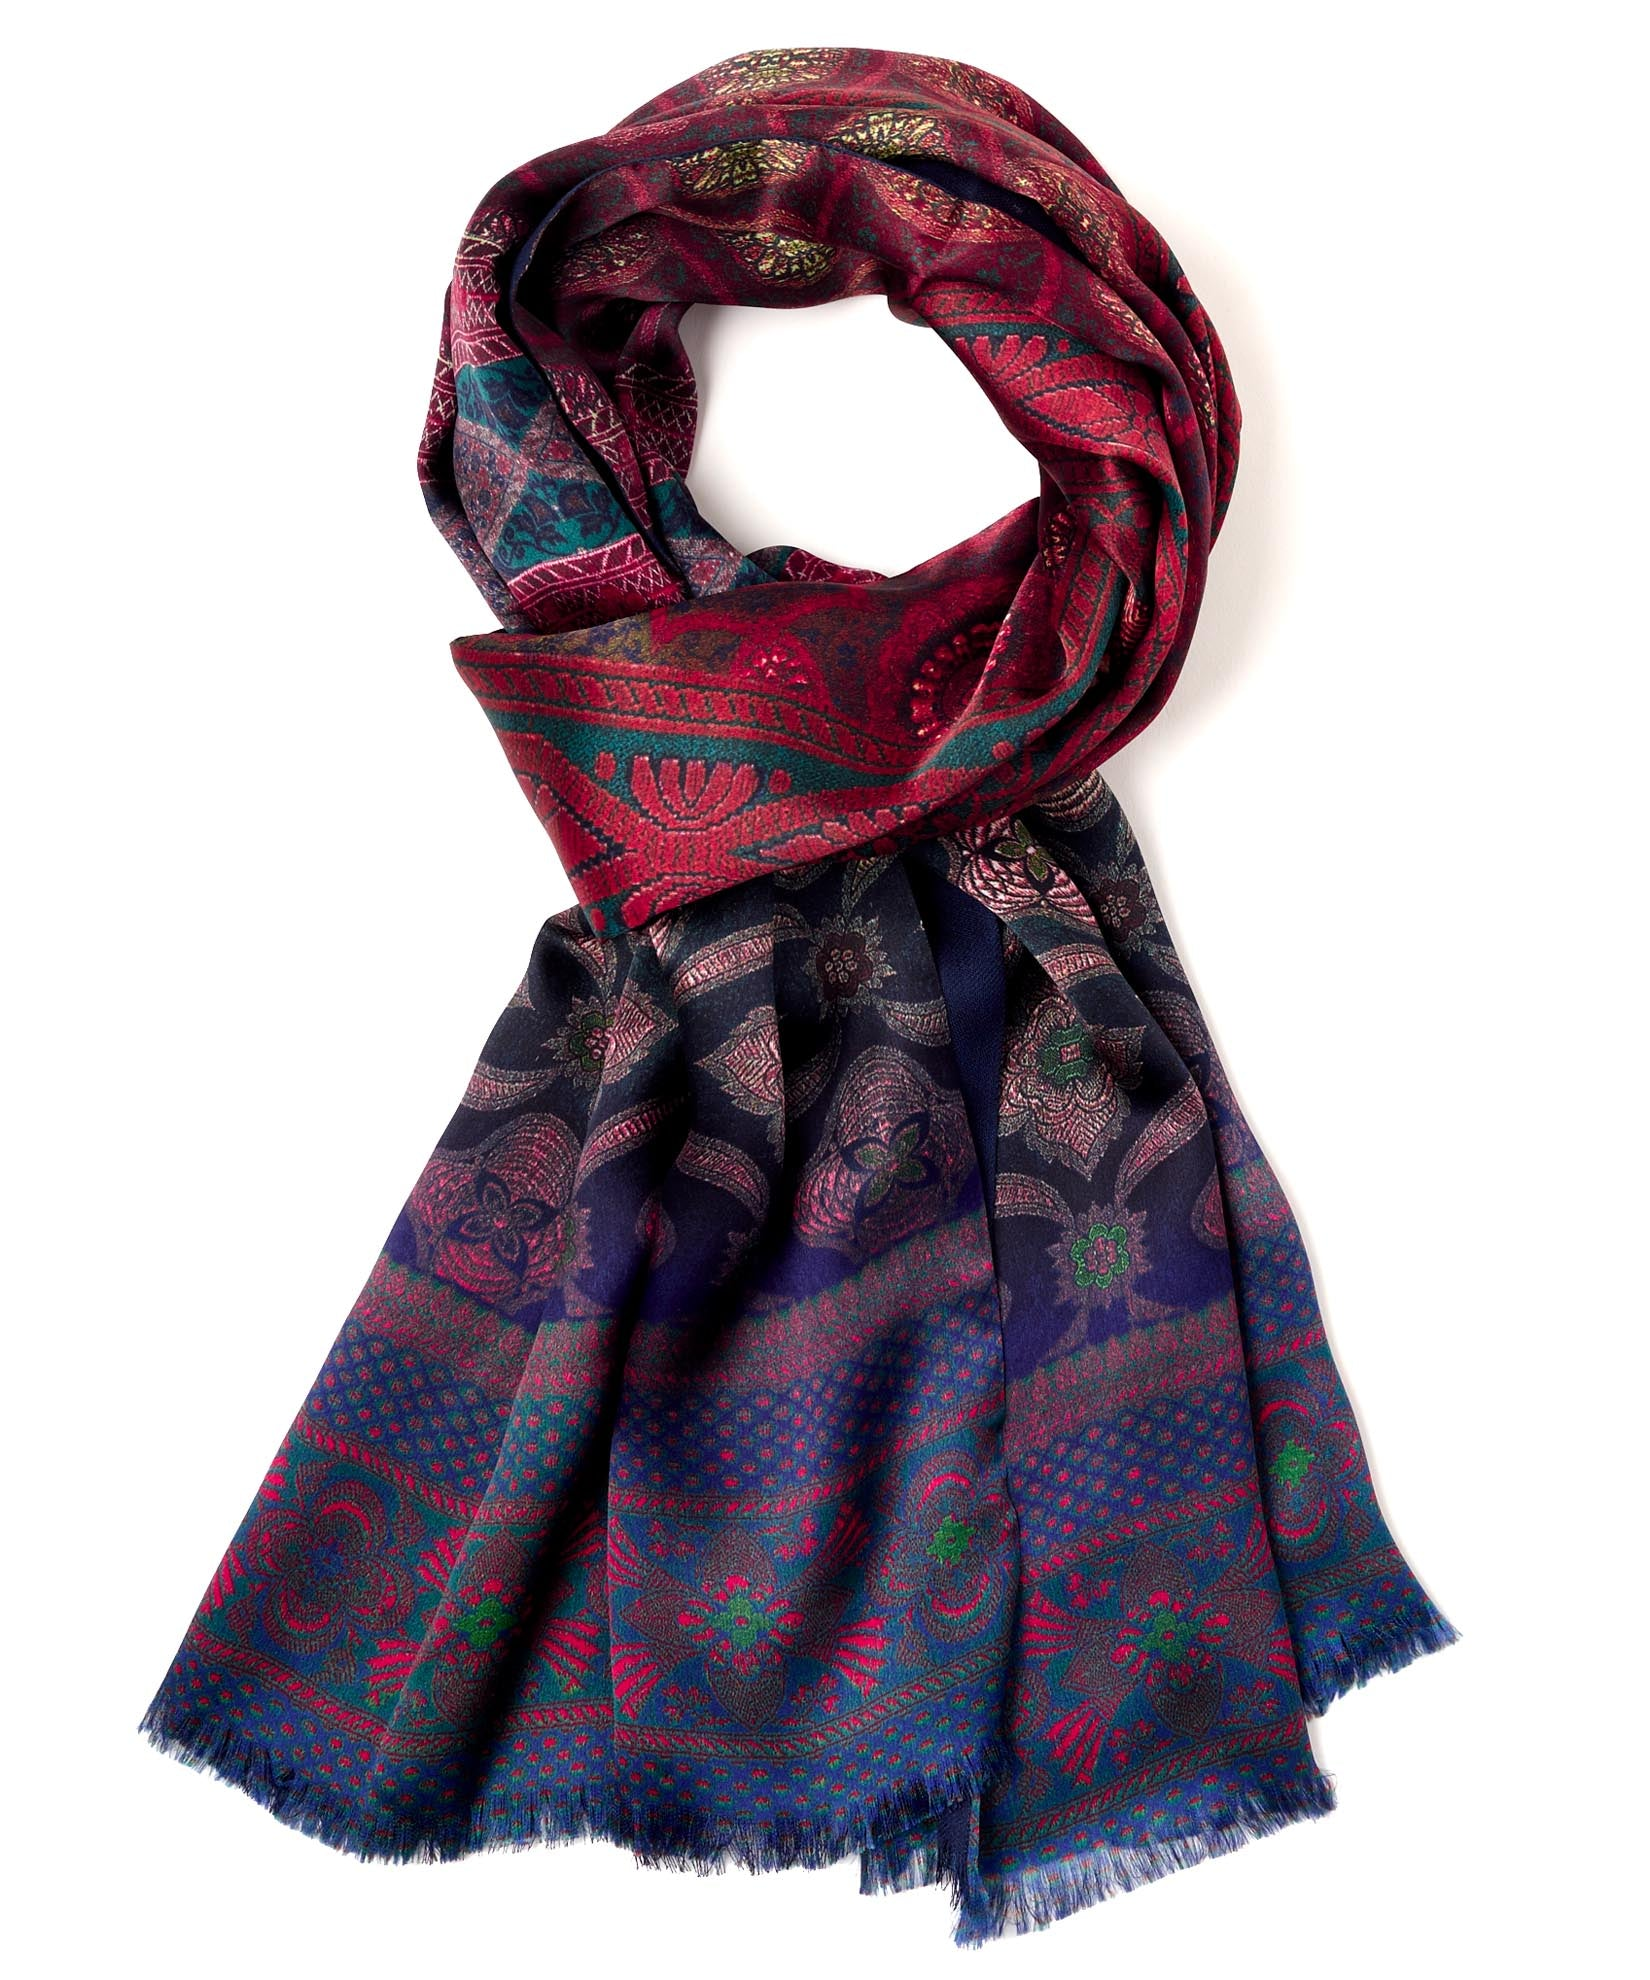 Sunset - Tapestry Double-Faced Silk Wrap